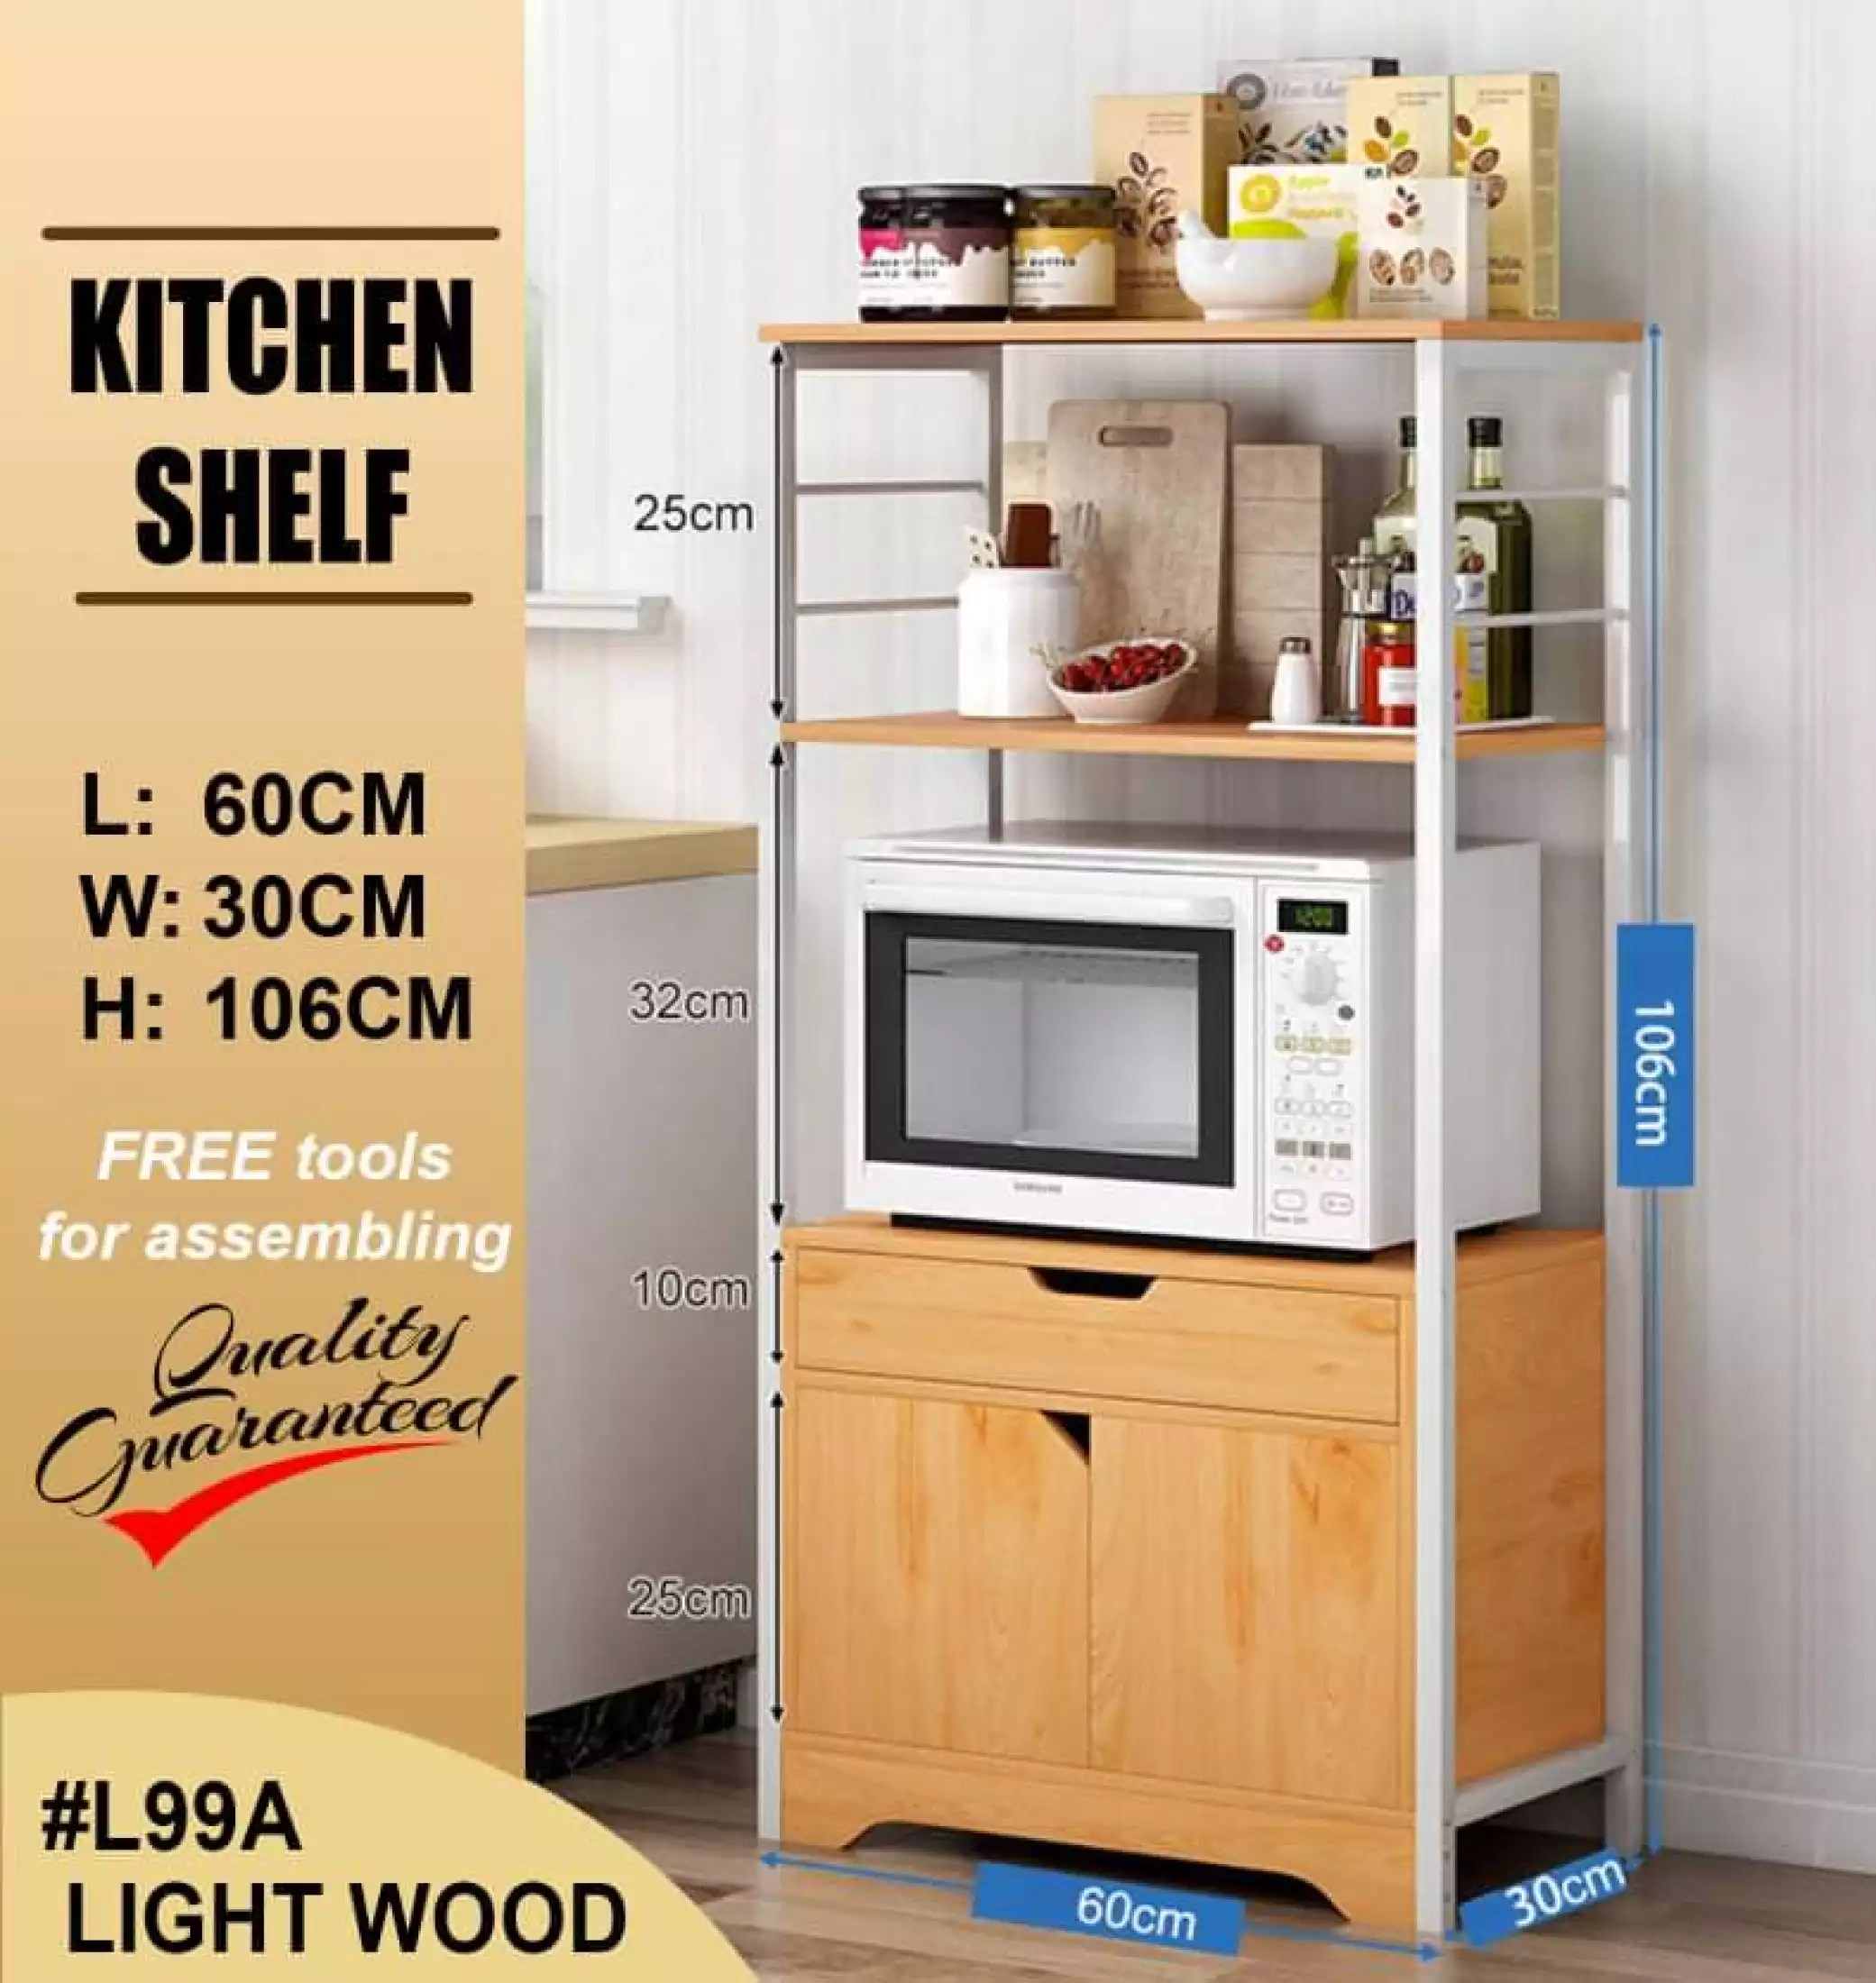 cod kitchen shelf microwave oven rack with cabinet and drawer 106cm